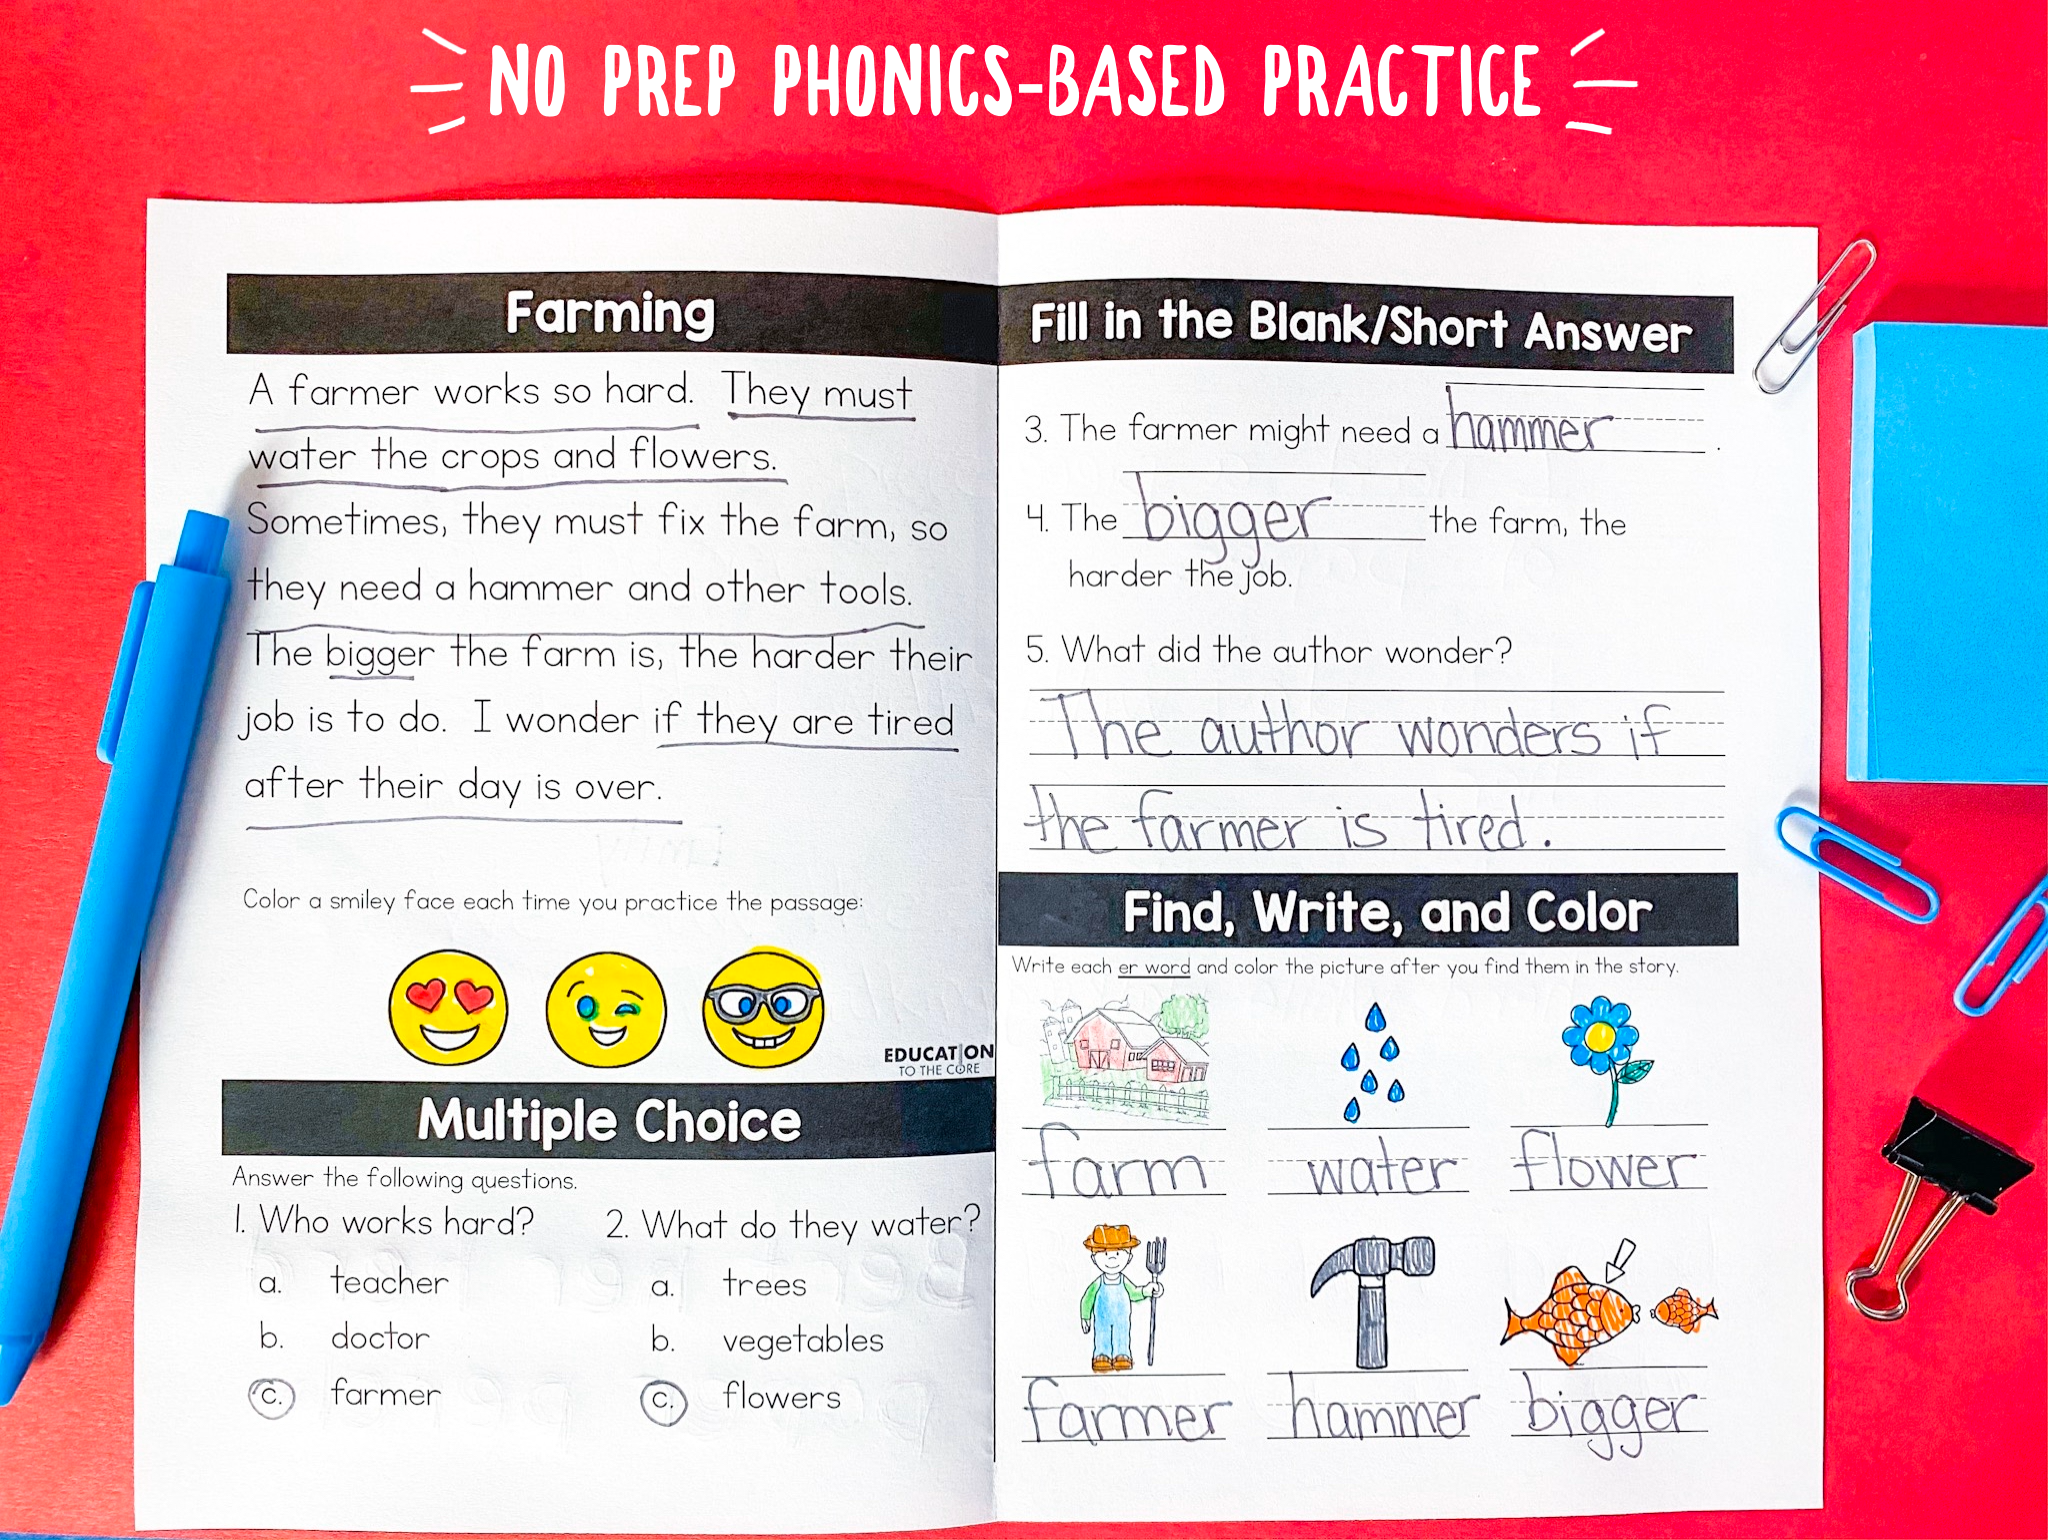 Over 200 No Prep Phonics Activities These Phonics Based